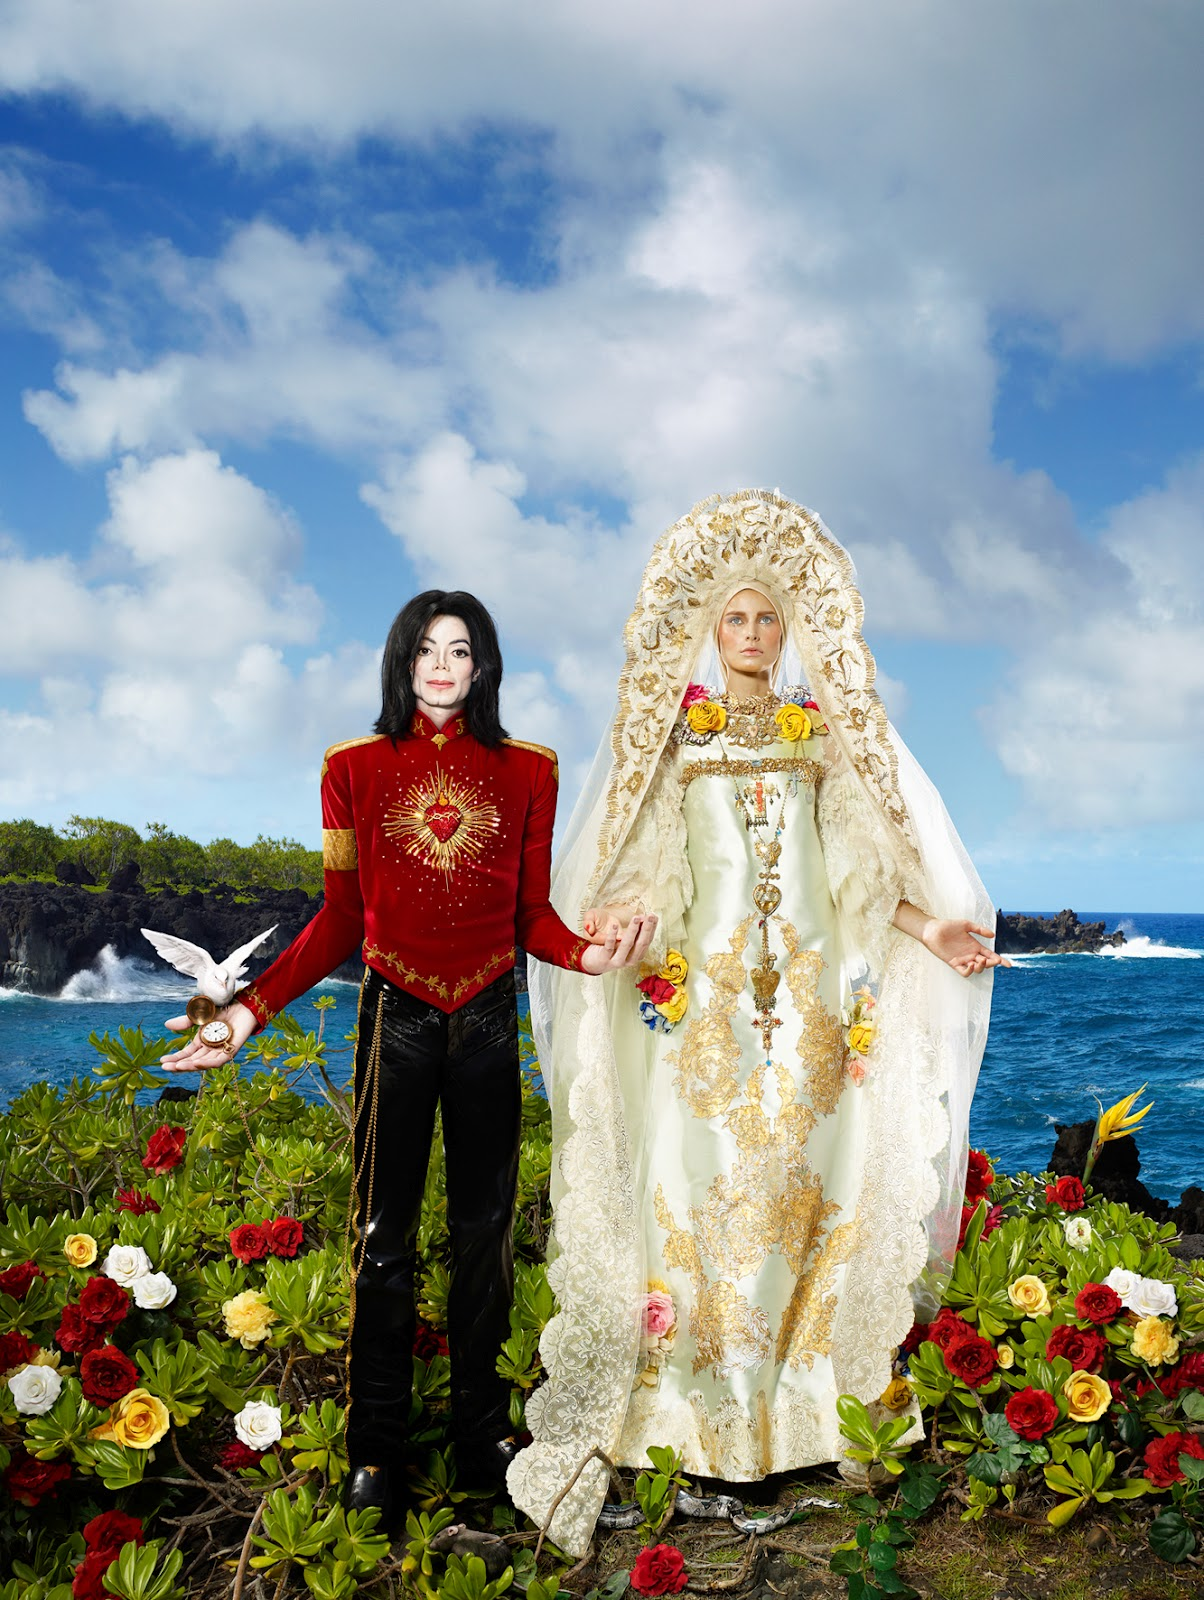 http://4.bp.blogspot.com/-7JUiKaW_hr0/T1kCaa5ZYjI/AAAAAAAABnA/BY02IVaBZ8k/s1600/01_david-lachapelle-thebeatificatio.jpg